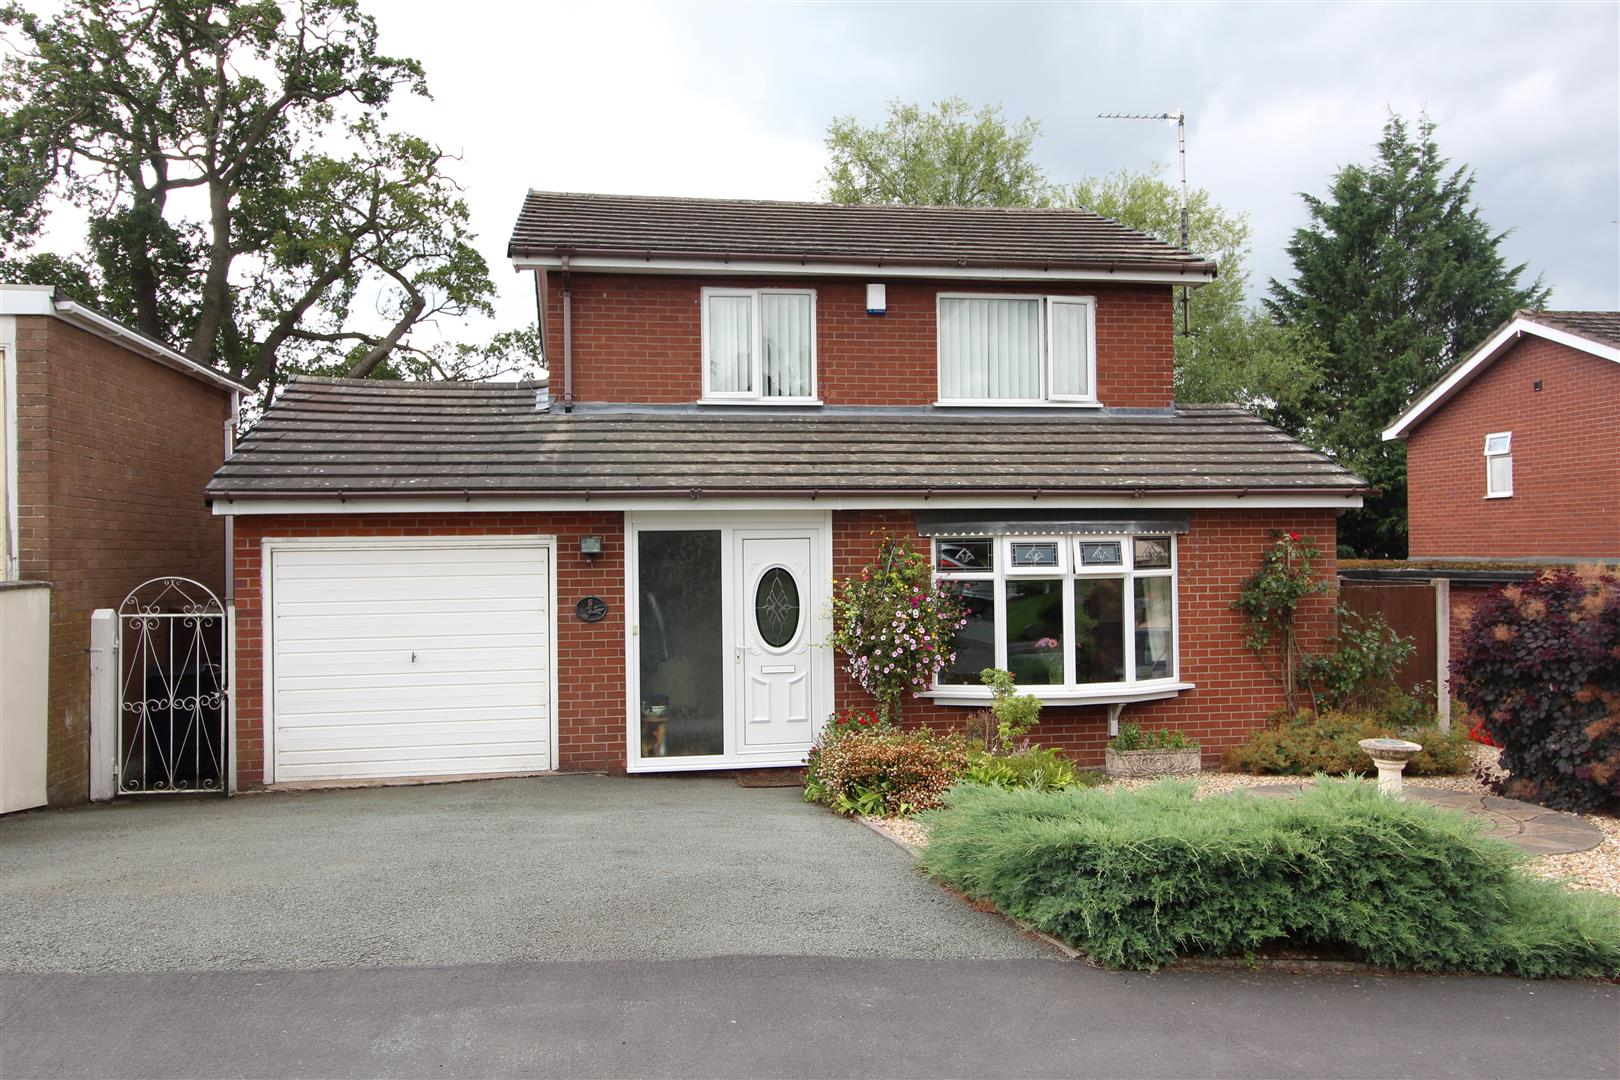 Perry Road, Gobowen, Oswestry